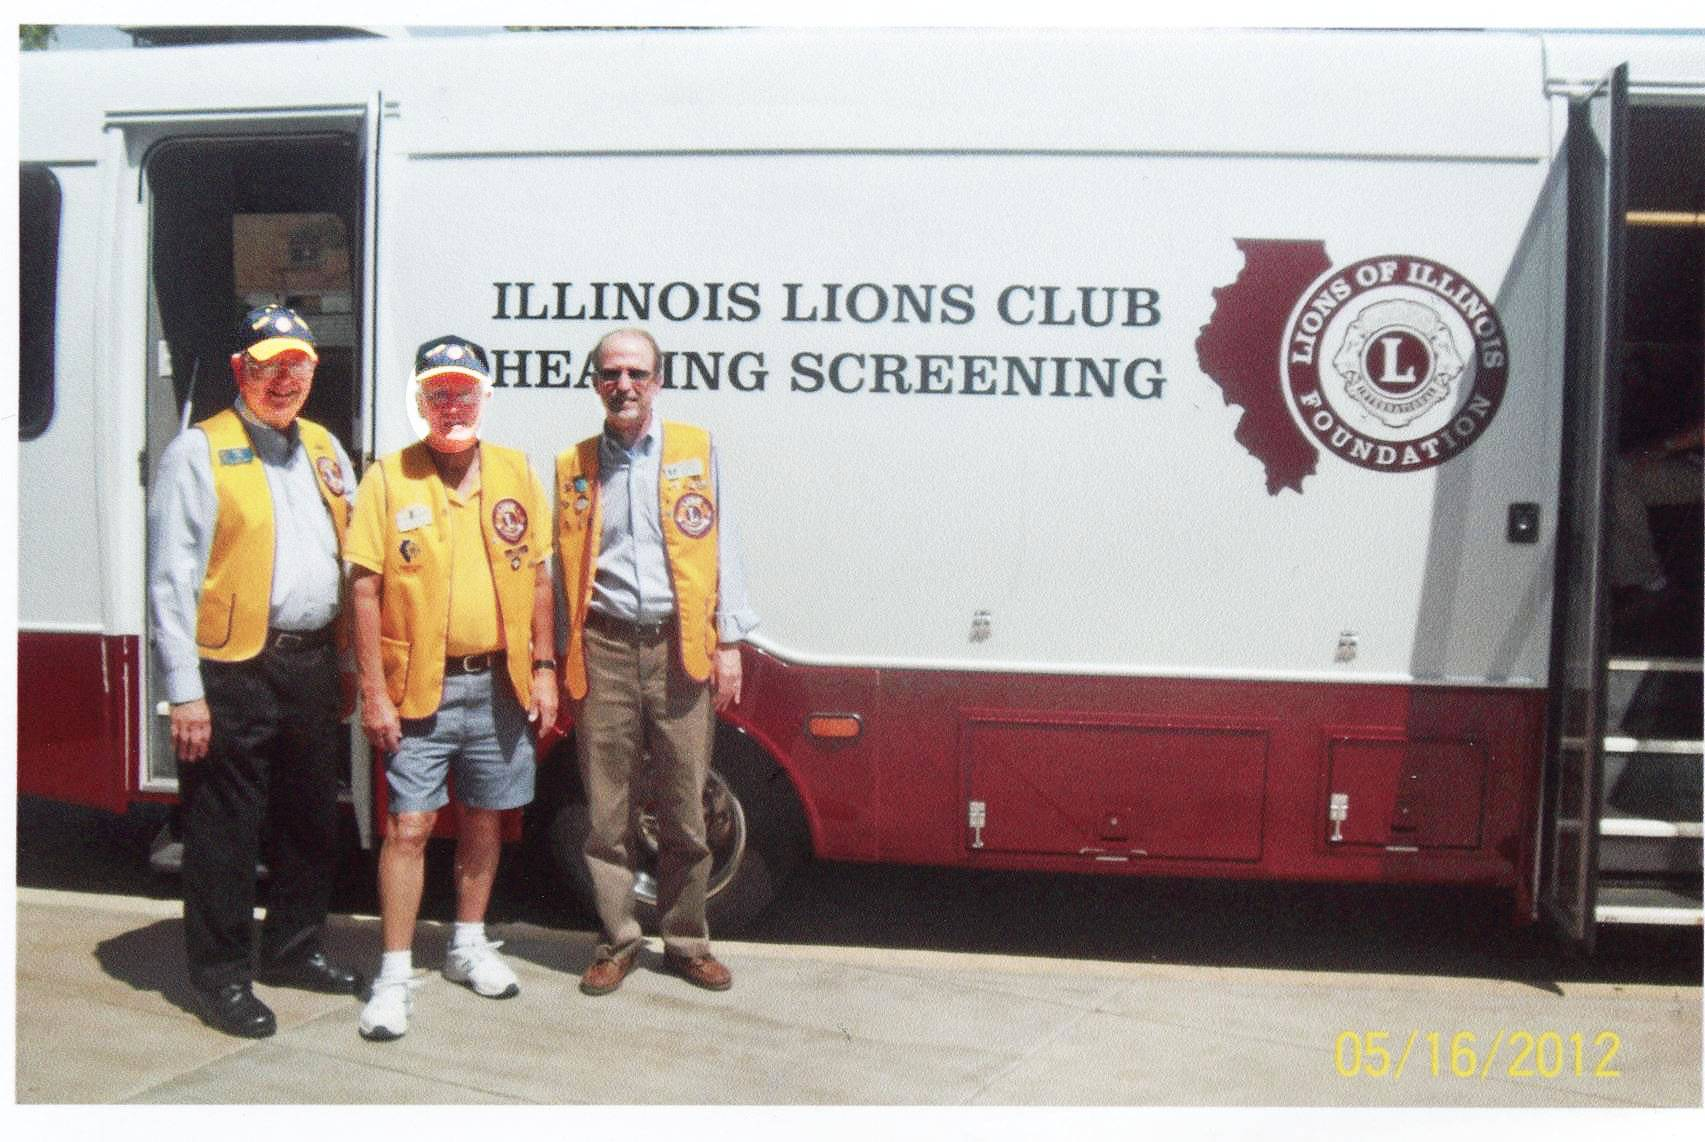 From left, Elgin Lions Club members, Dick June, Rodney Roberts, and Ed Bates await local residents for hearing screening.